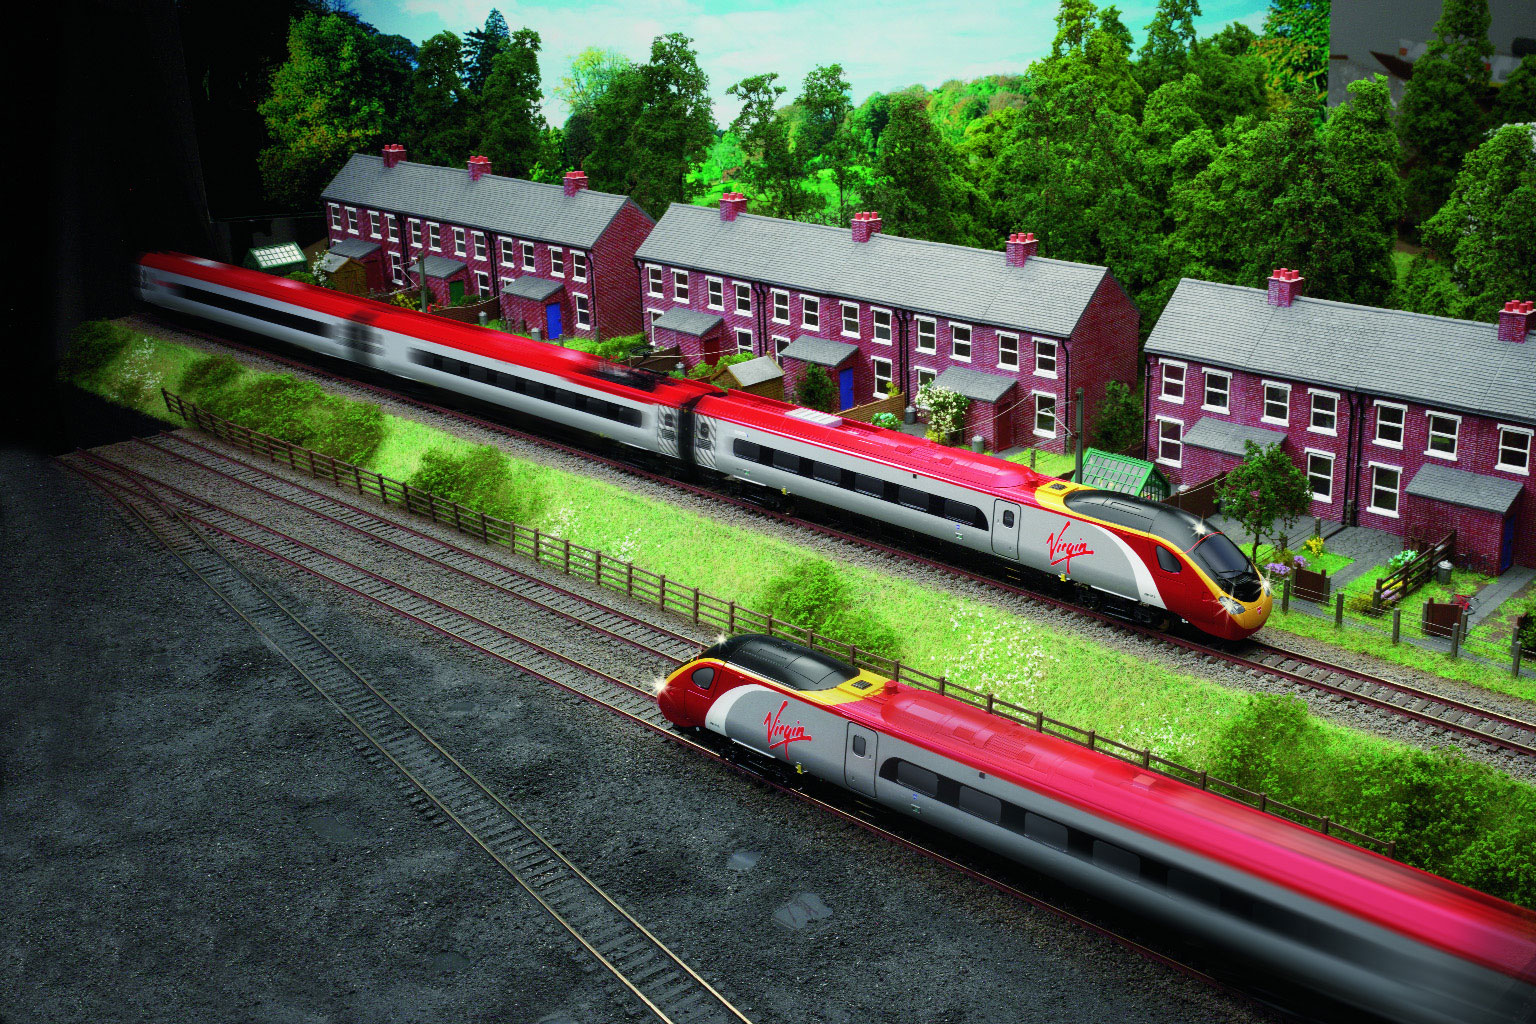 VIRGIN TRAINS LIMITED - Company Check